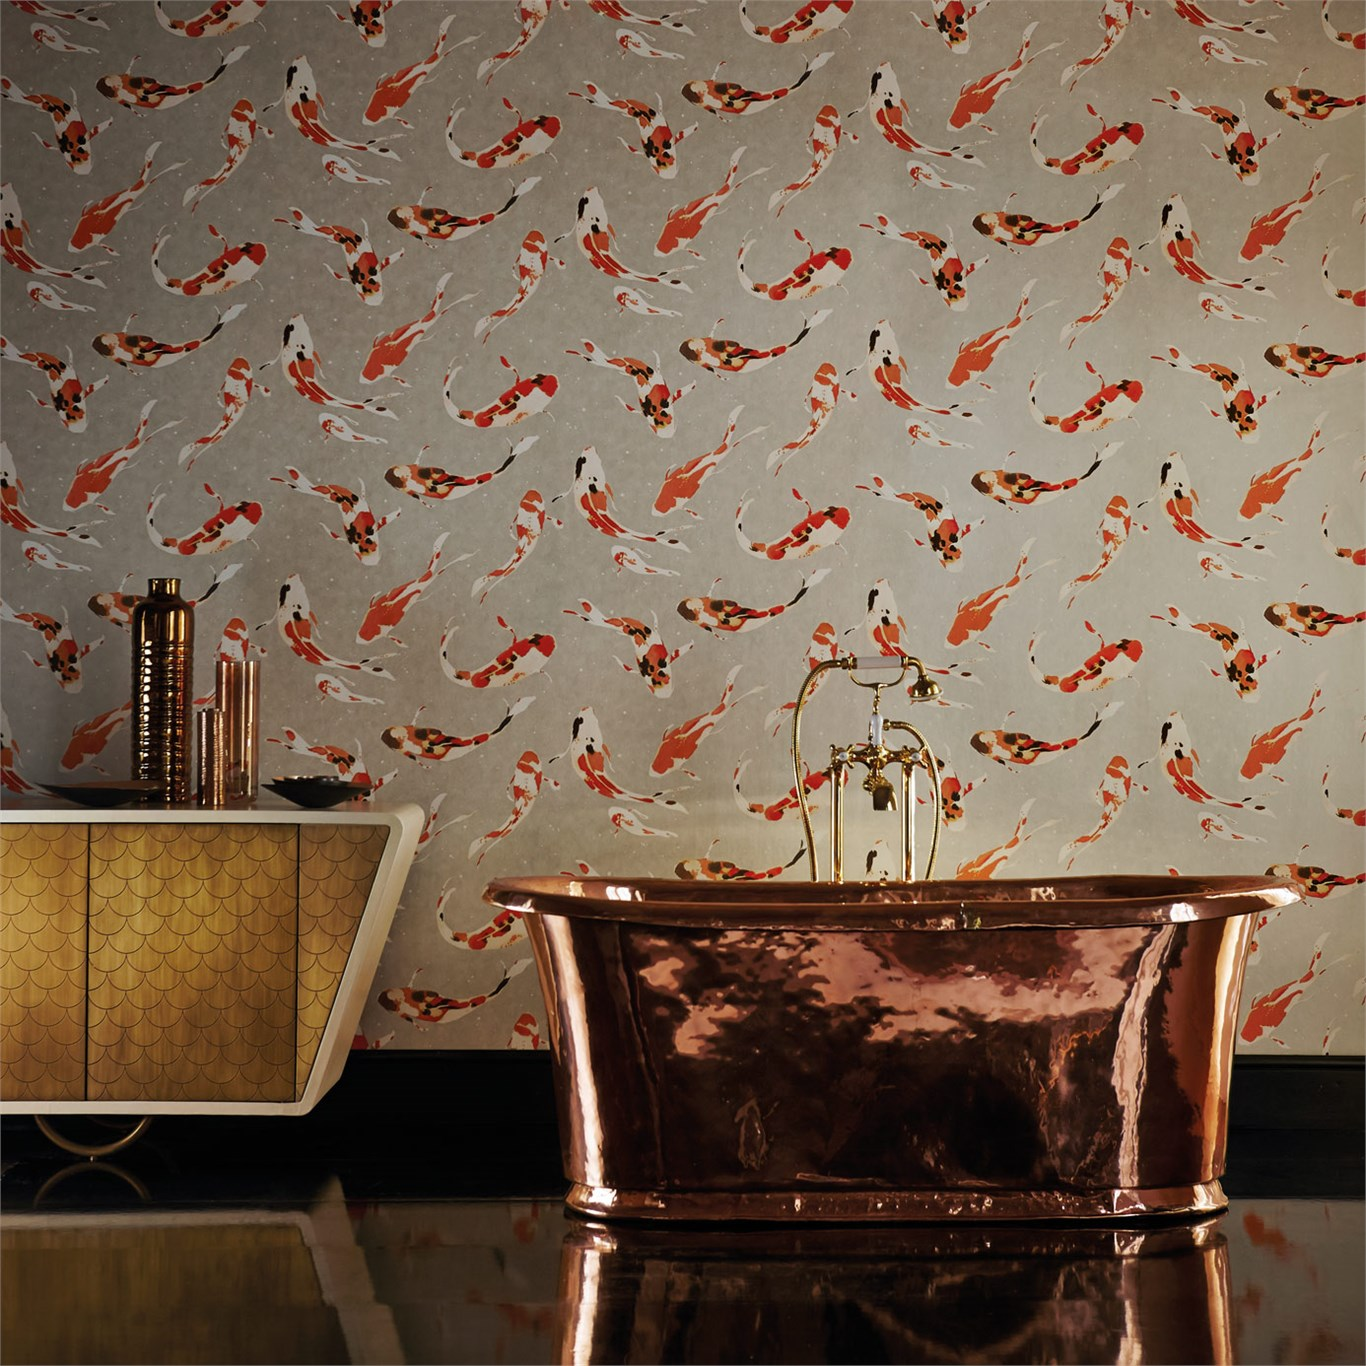 Wallpaper With Fish On It For Walls